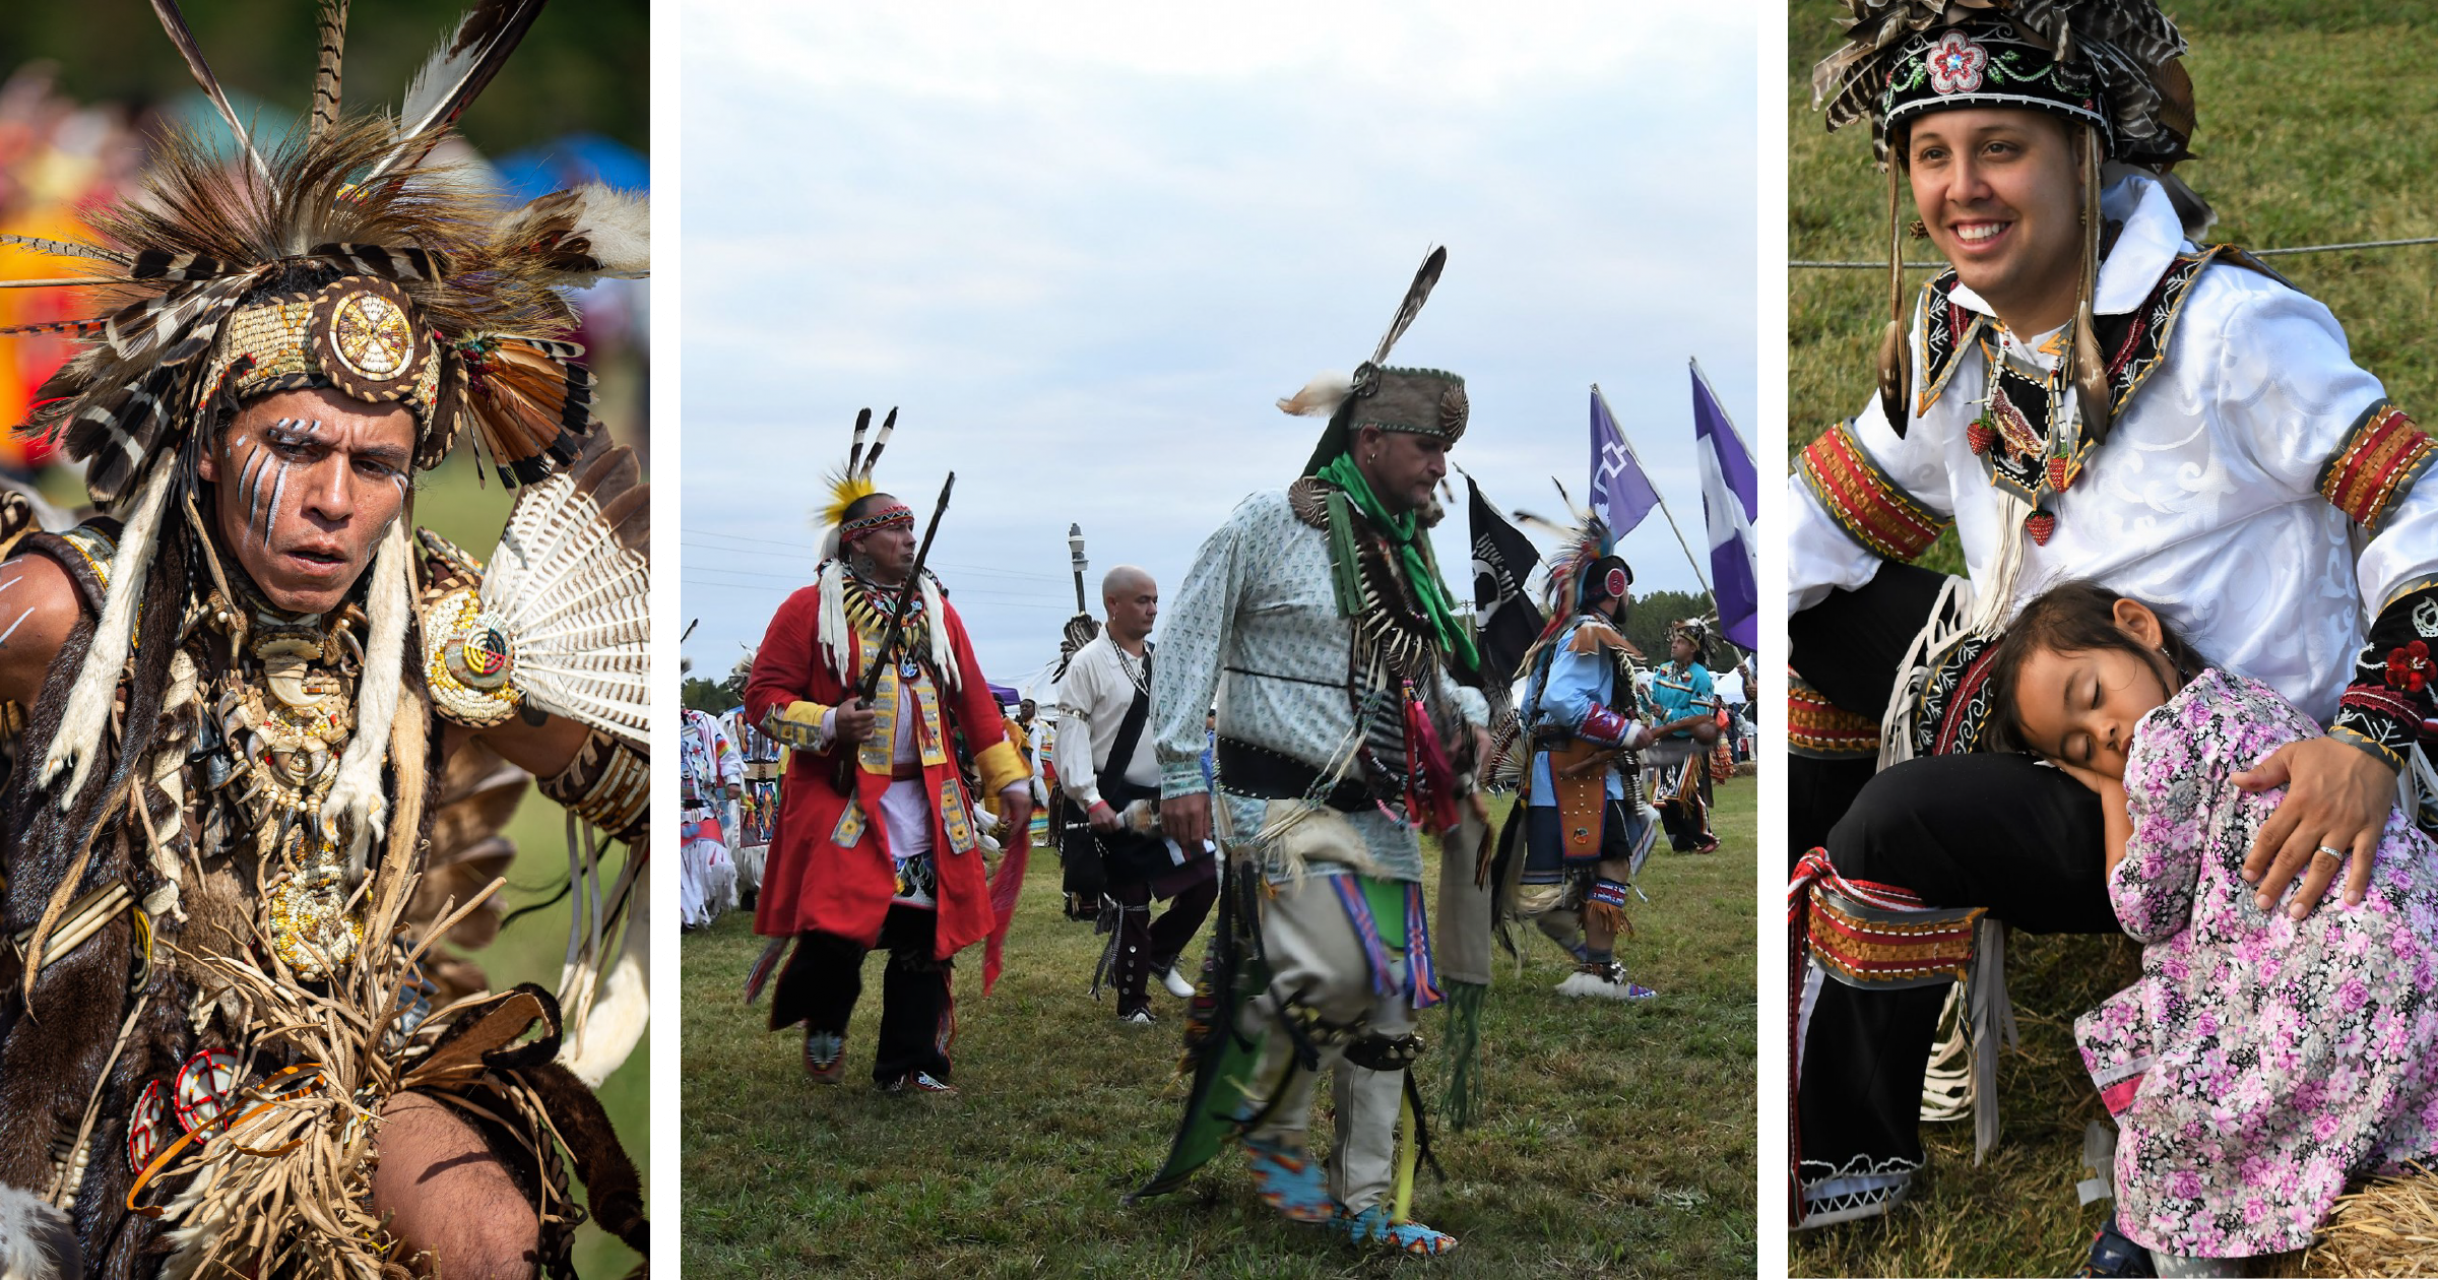 At the Meherrin Powwow. From Left: Photo by Ivan Richardson, Photo by Gordon Allen, Photo of Patrick Suarez and His Daughter by Gordon Allen.